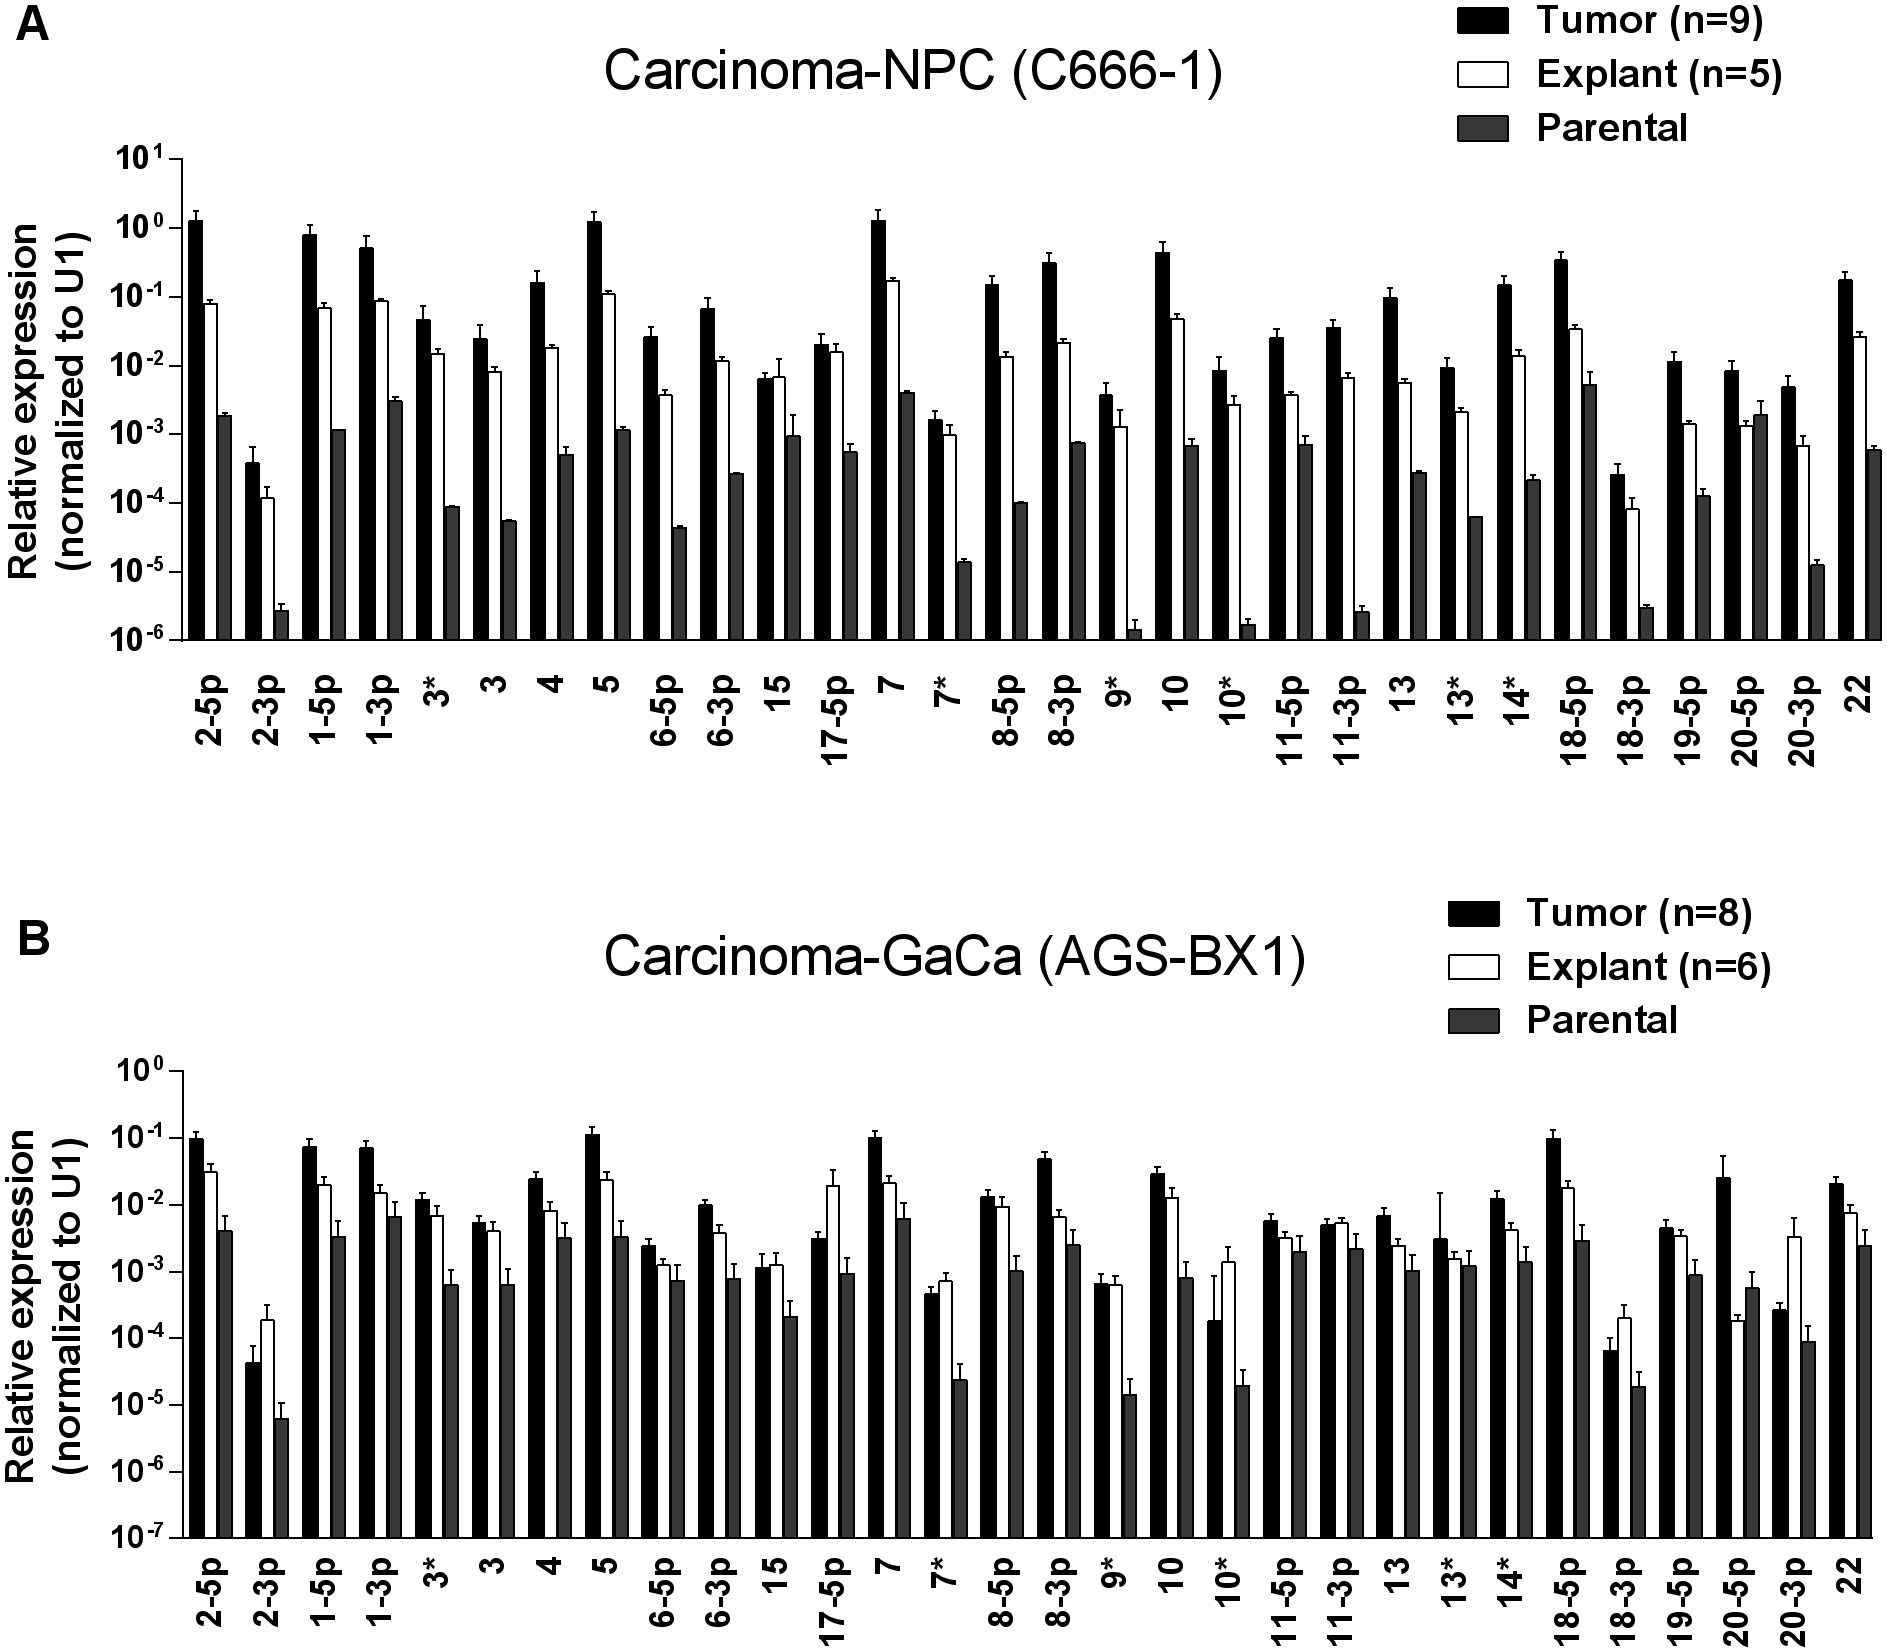 BART miRNA expression is up regulated when carcinoma cells are grown <i>in vivo</i>.